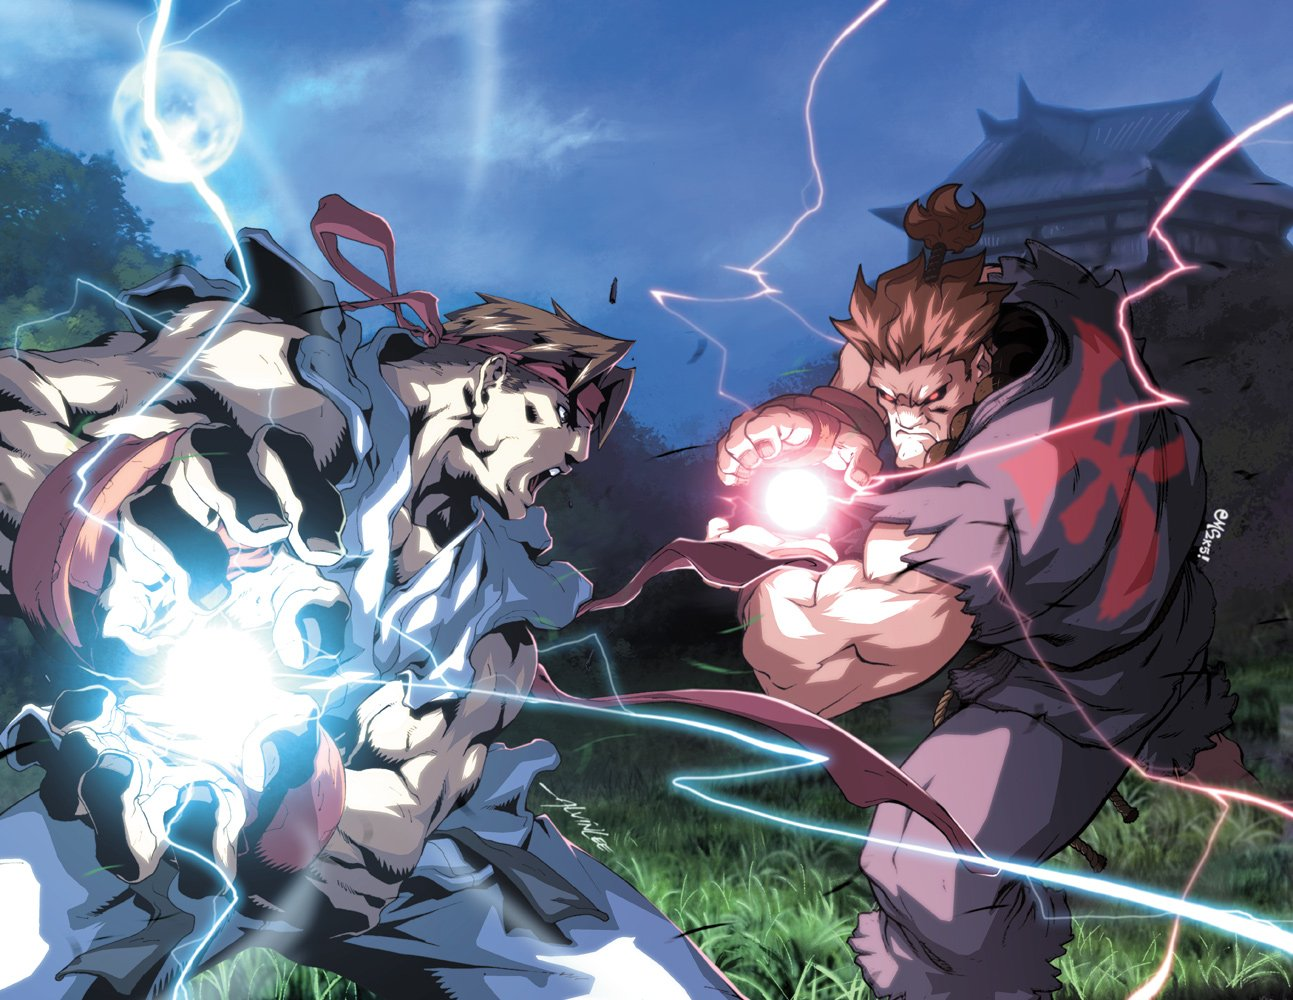 238 Street Fighter HD Wallpapers | Backgrounds - Wallpaper Abyss